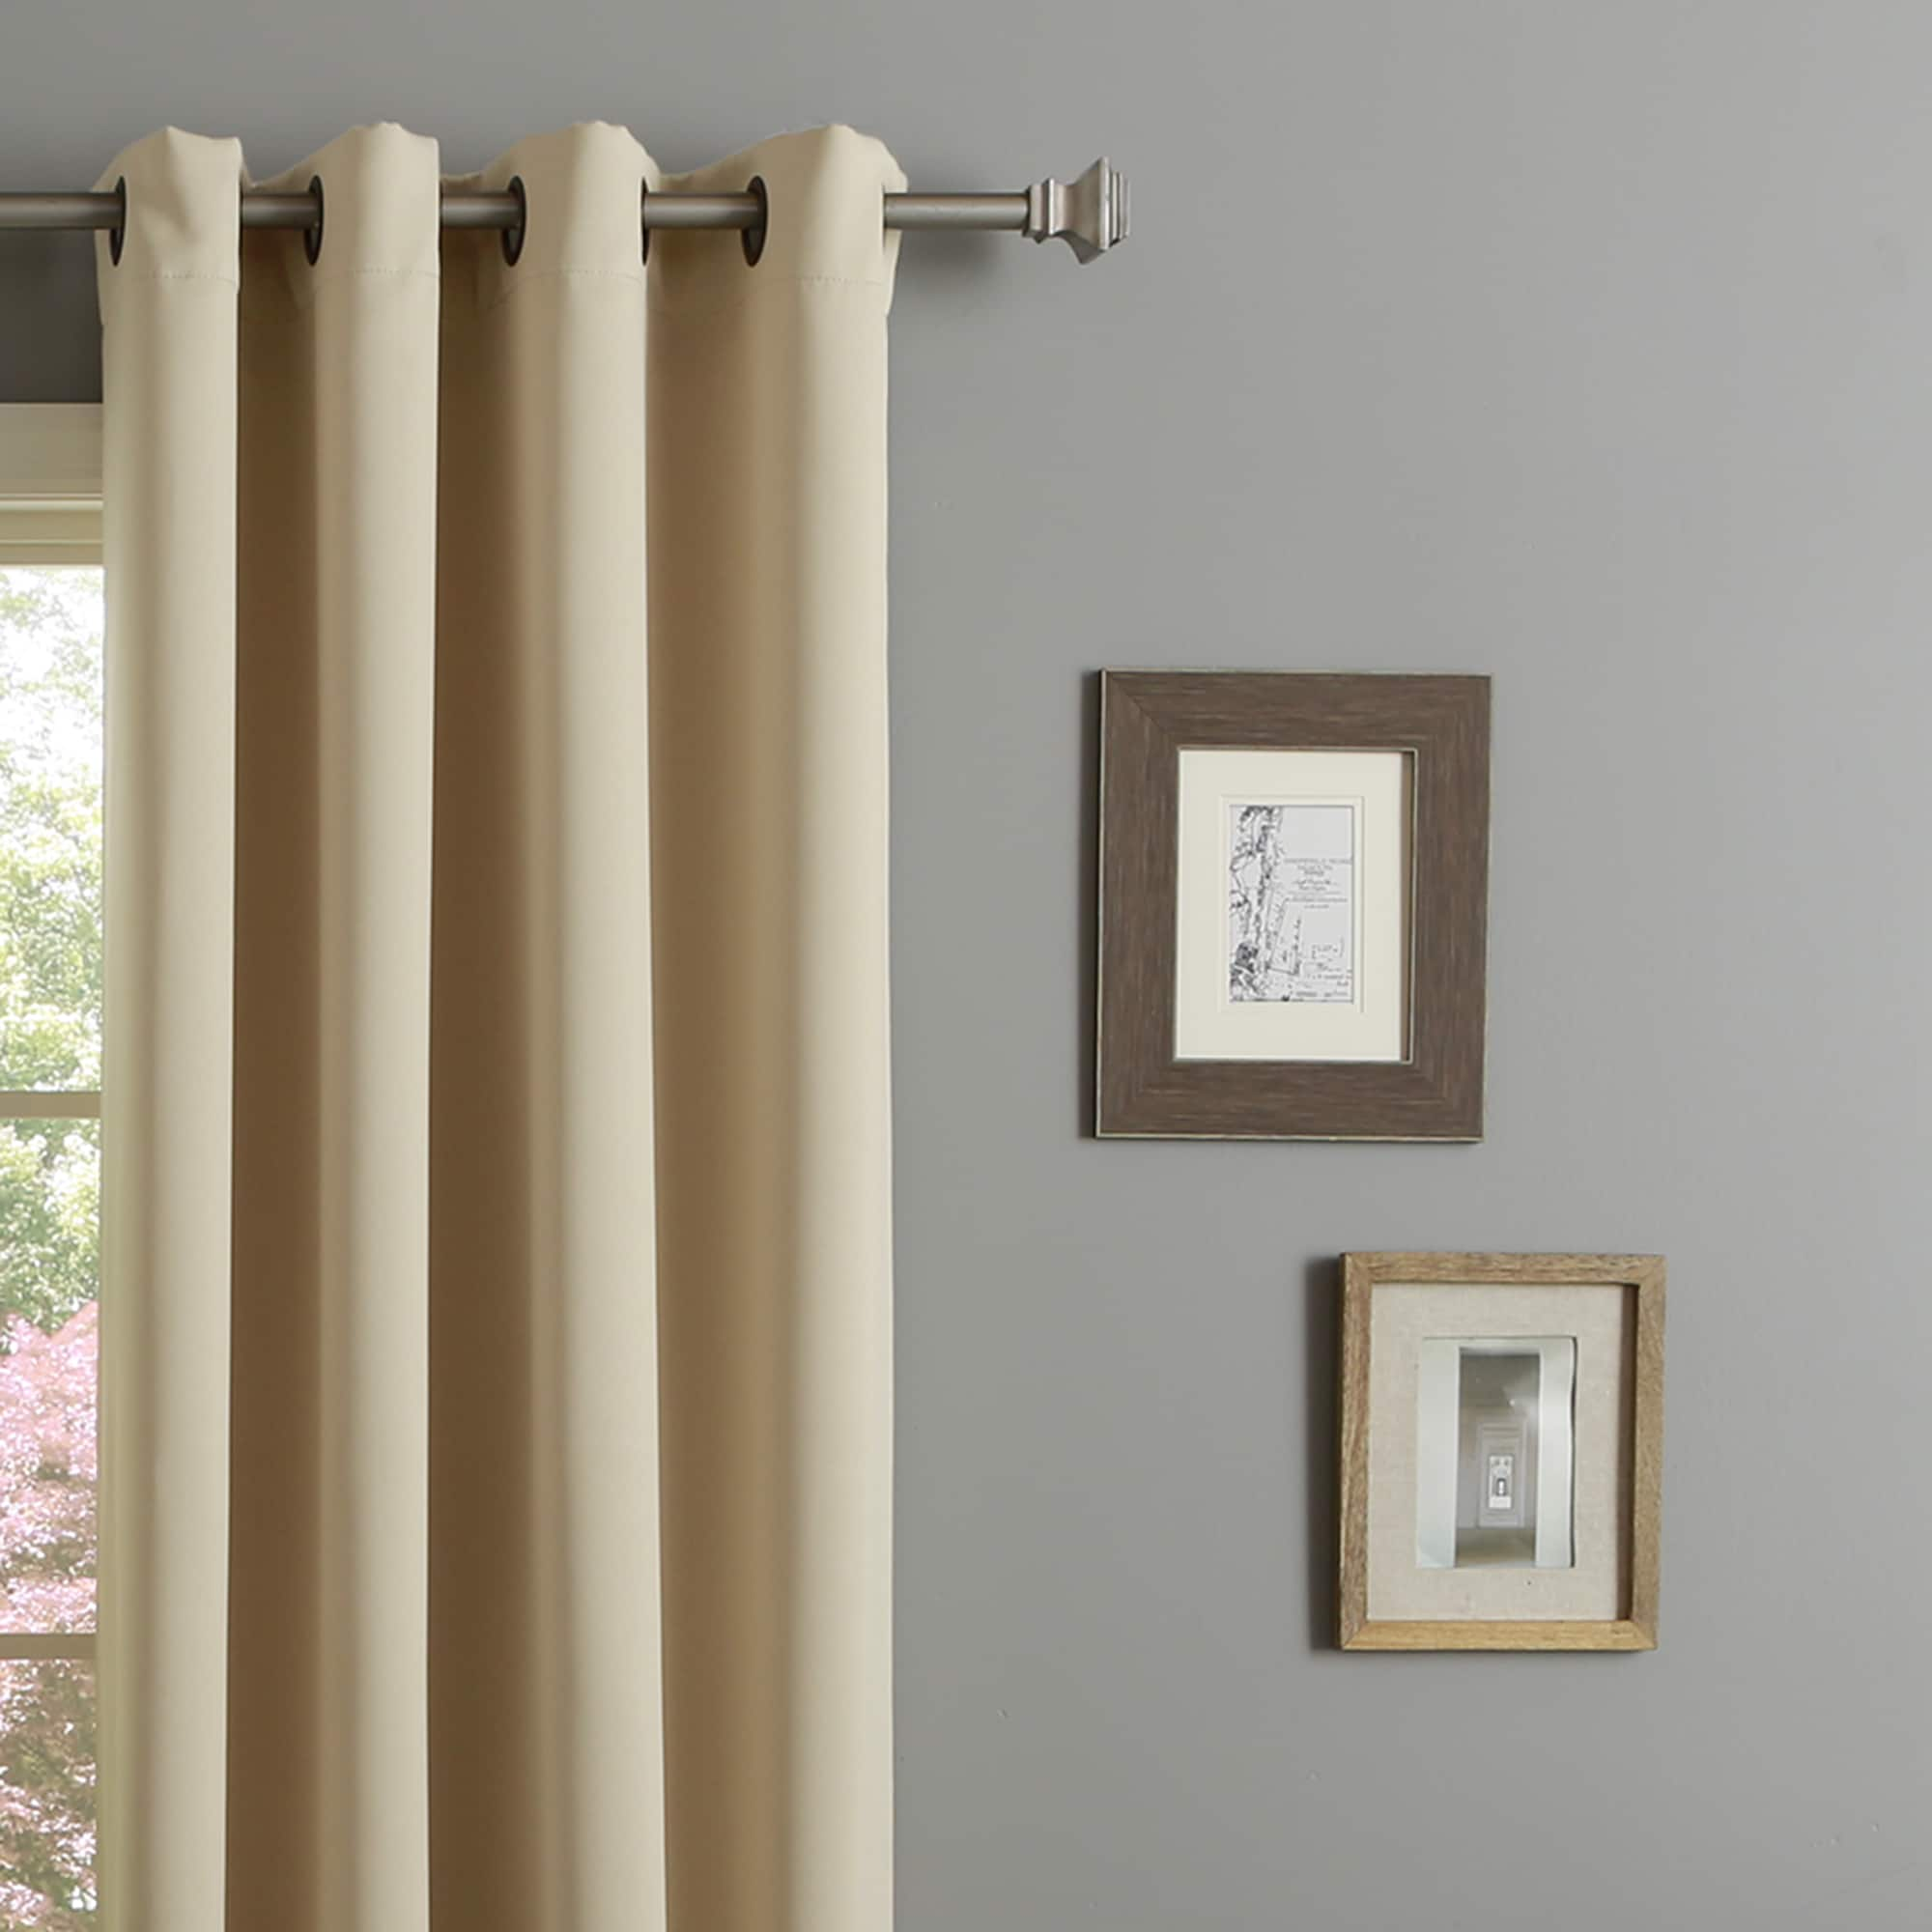 curtains plated nickel outdoor grommets sesame xx curtain top pi grommet curssgrs sunbrella with linen web